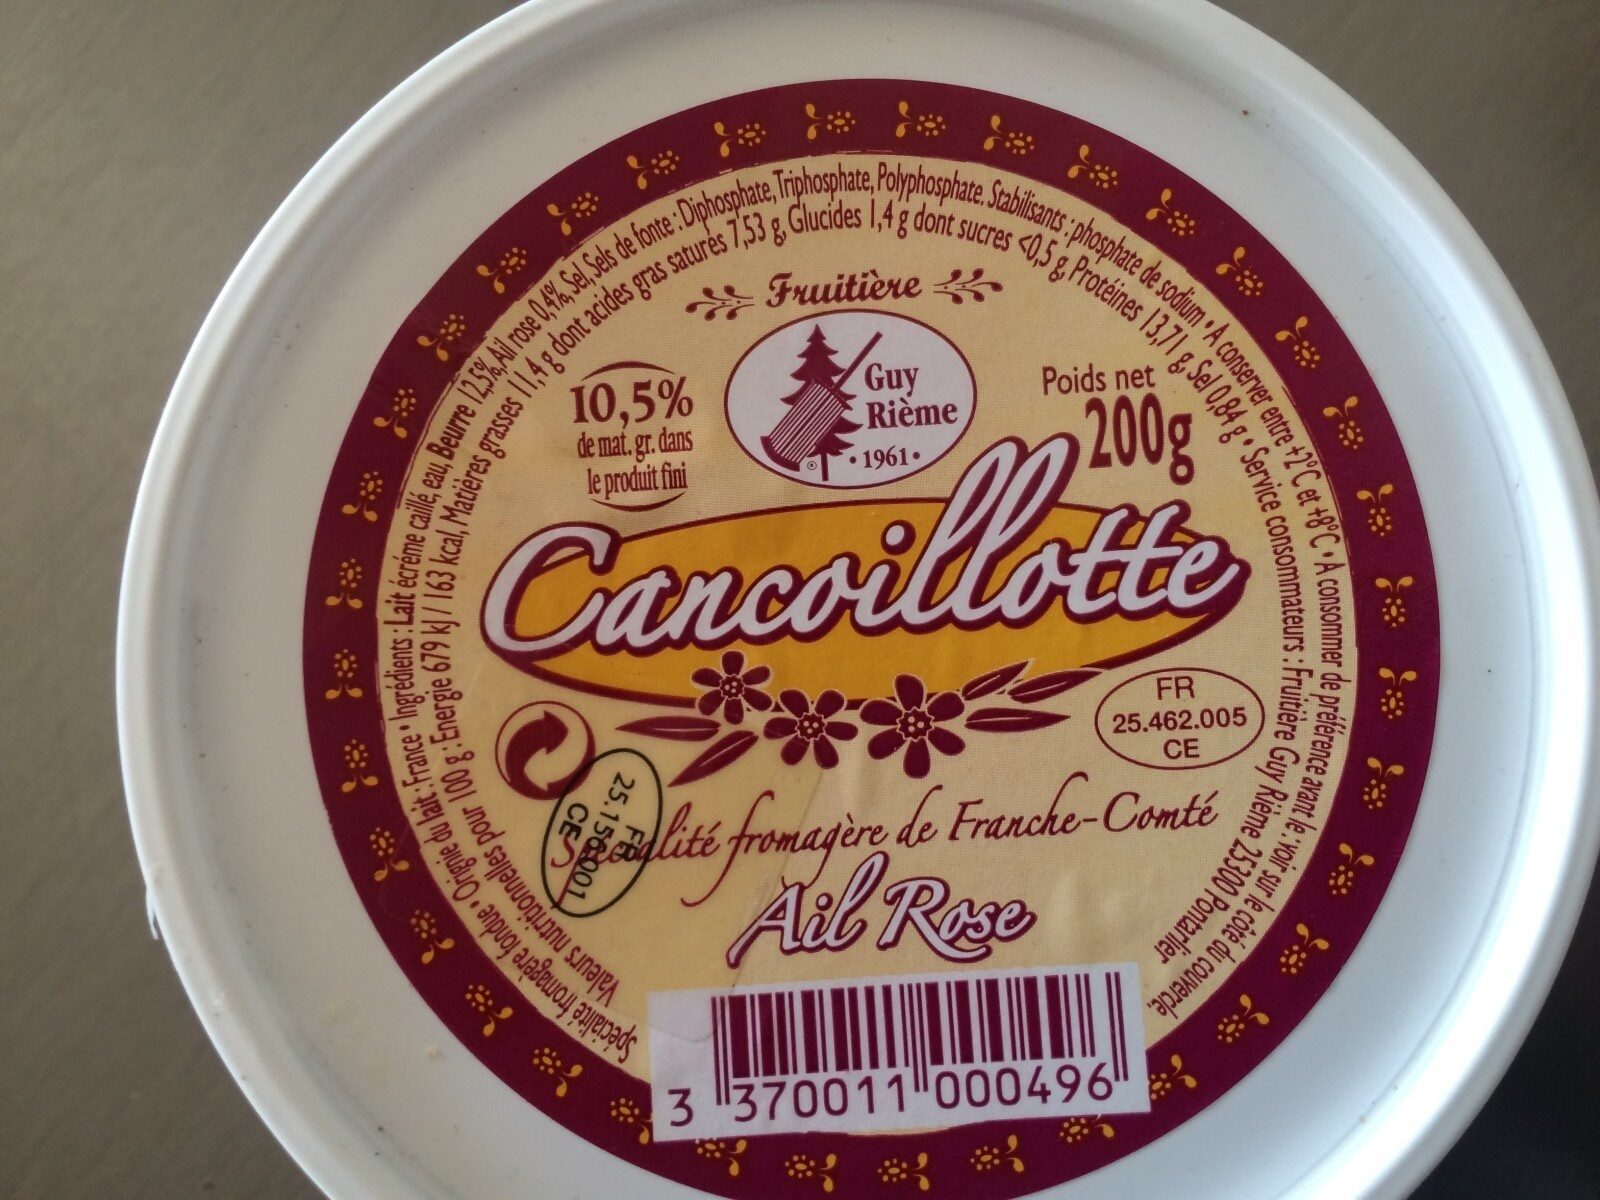 Cancoillotte ail rose - Product - fr